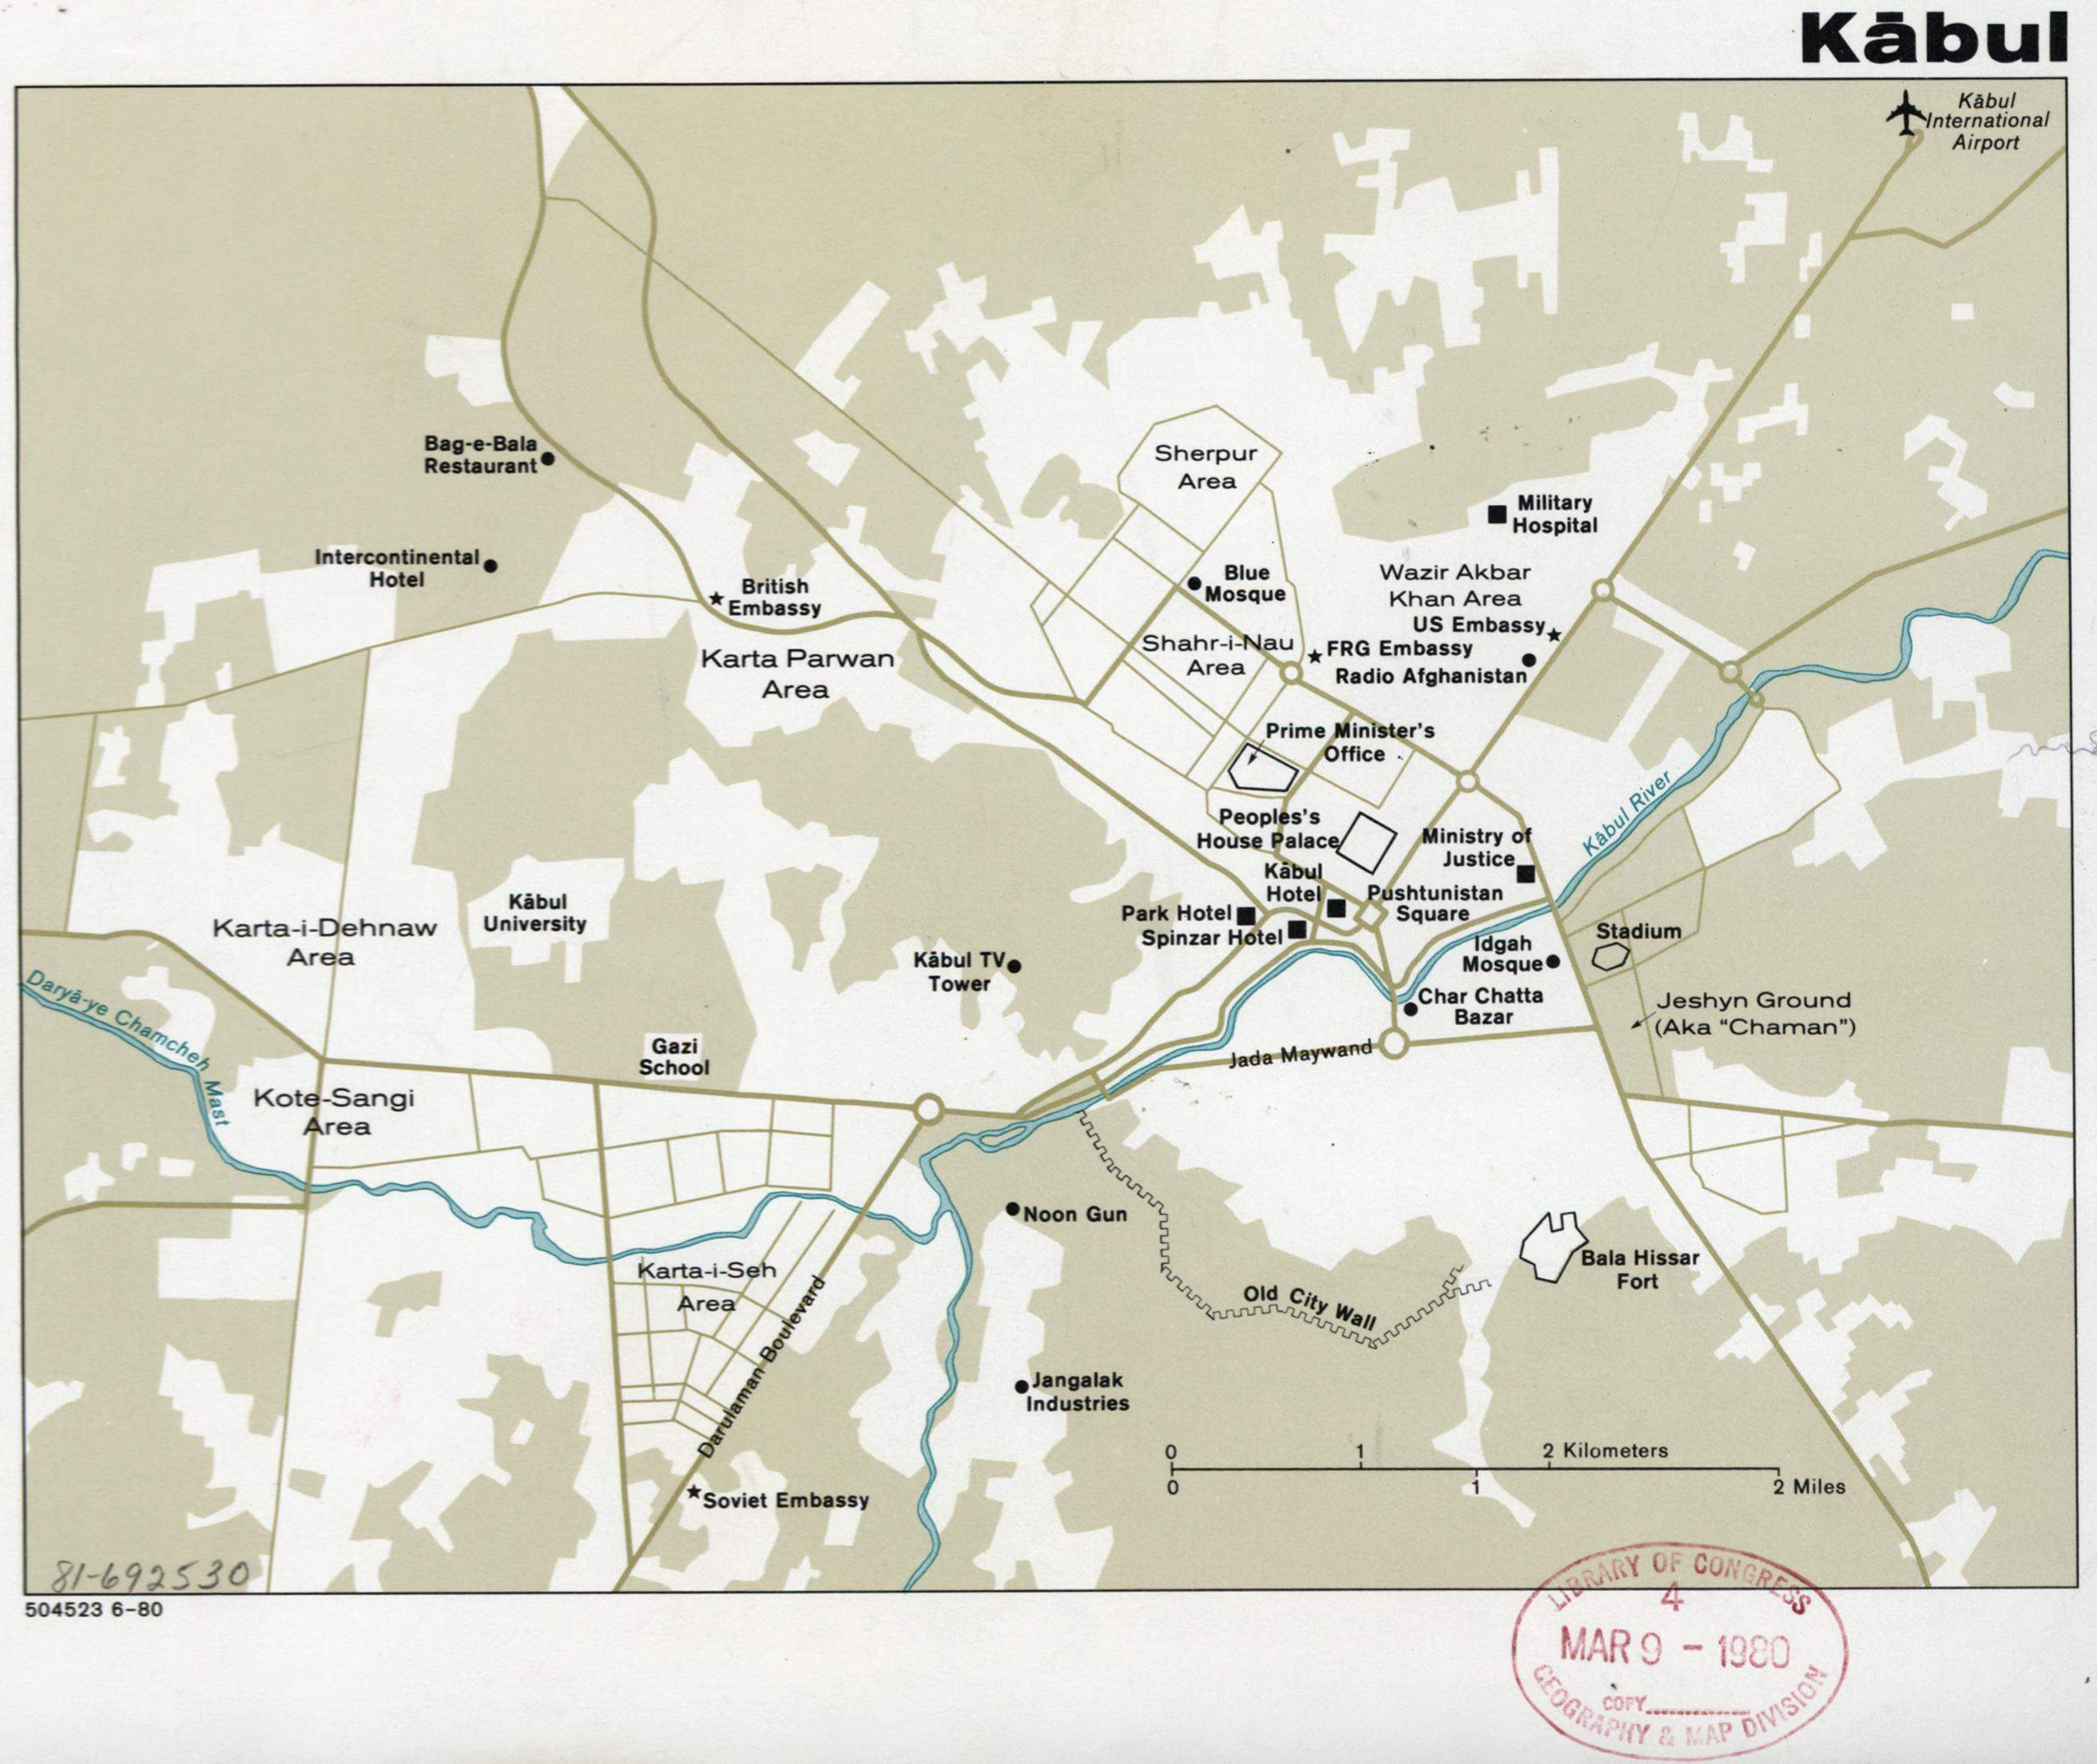 Map of Kabul, Afghanistan Cia, 1980 - Mapsof.net